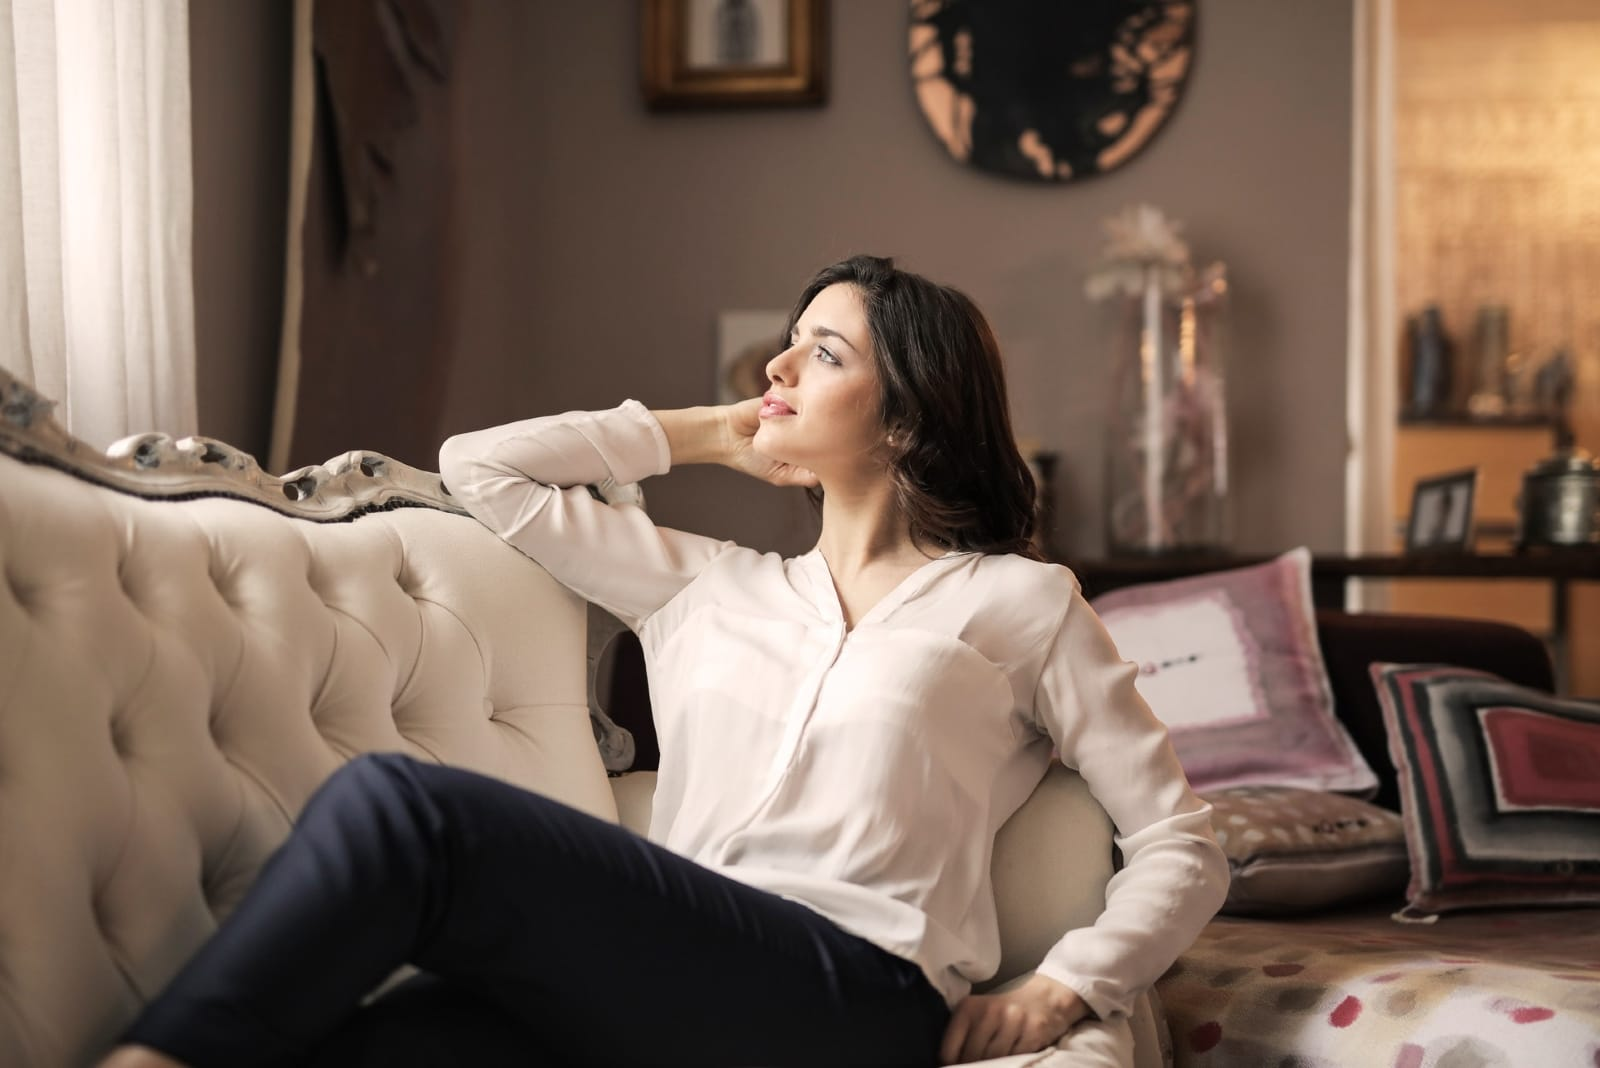 woman in white shirt sitting on sofa